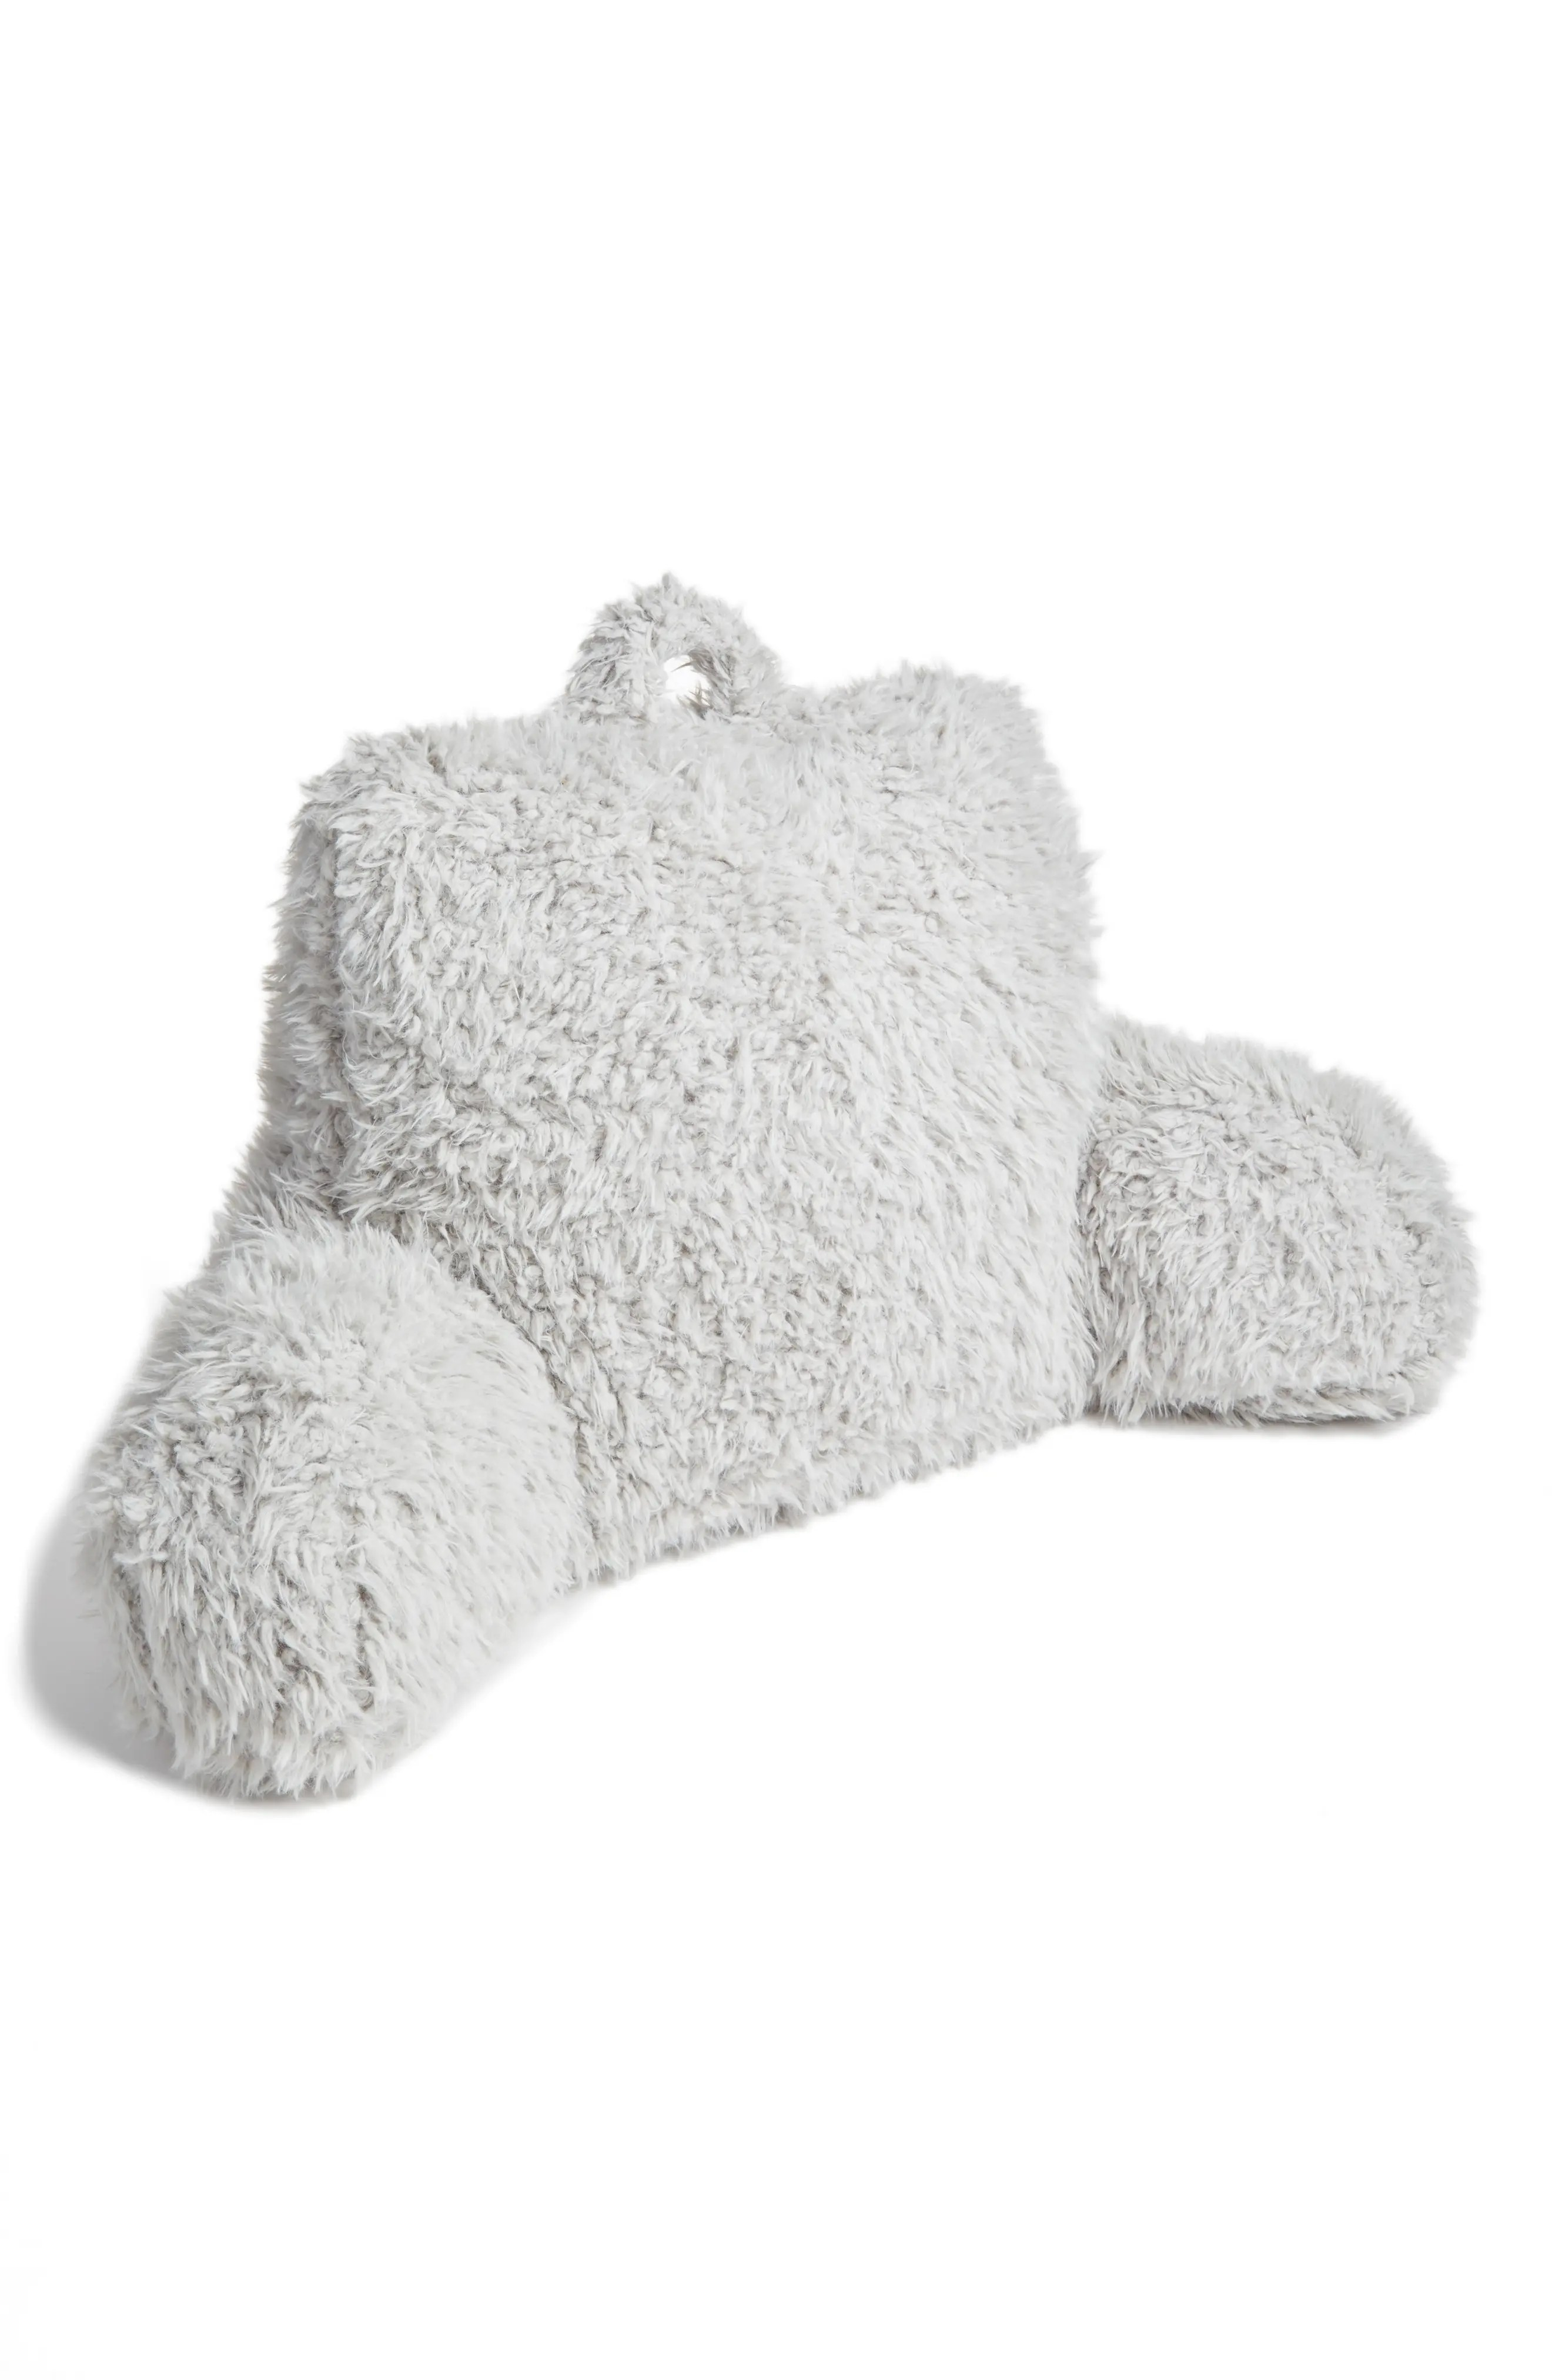 Nordstrom At Home Shaggy Faux Fur Backrest Pillow Nordstrom